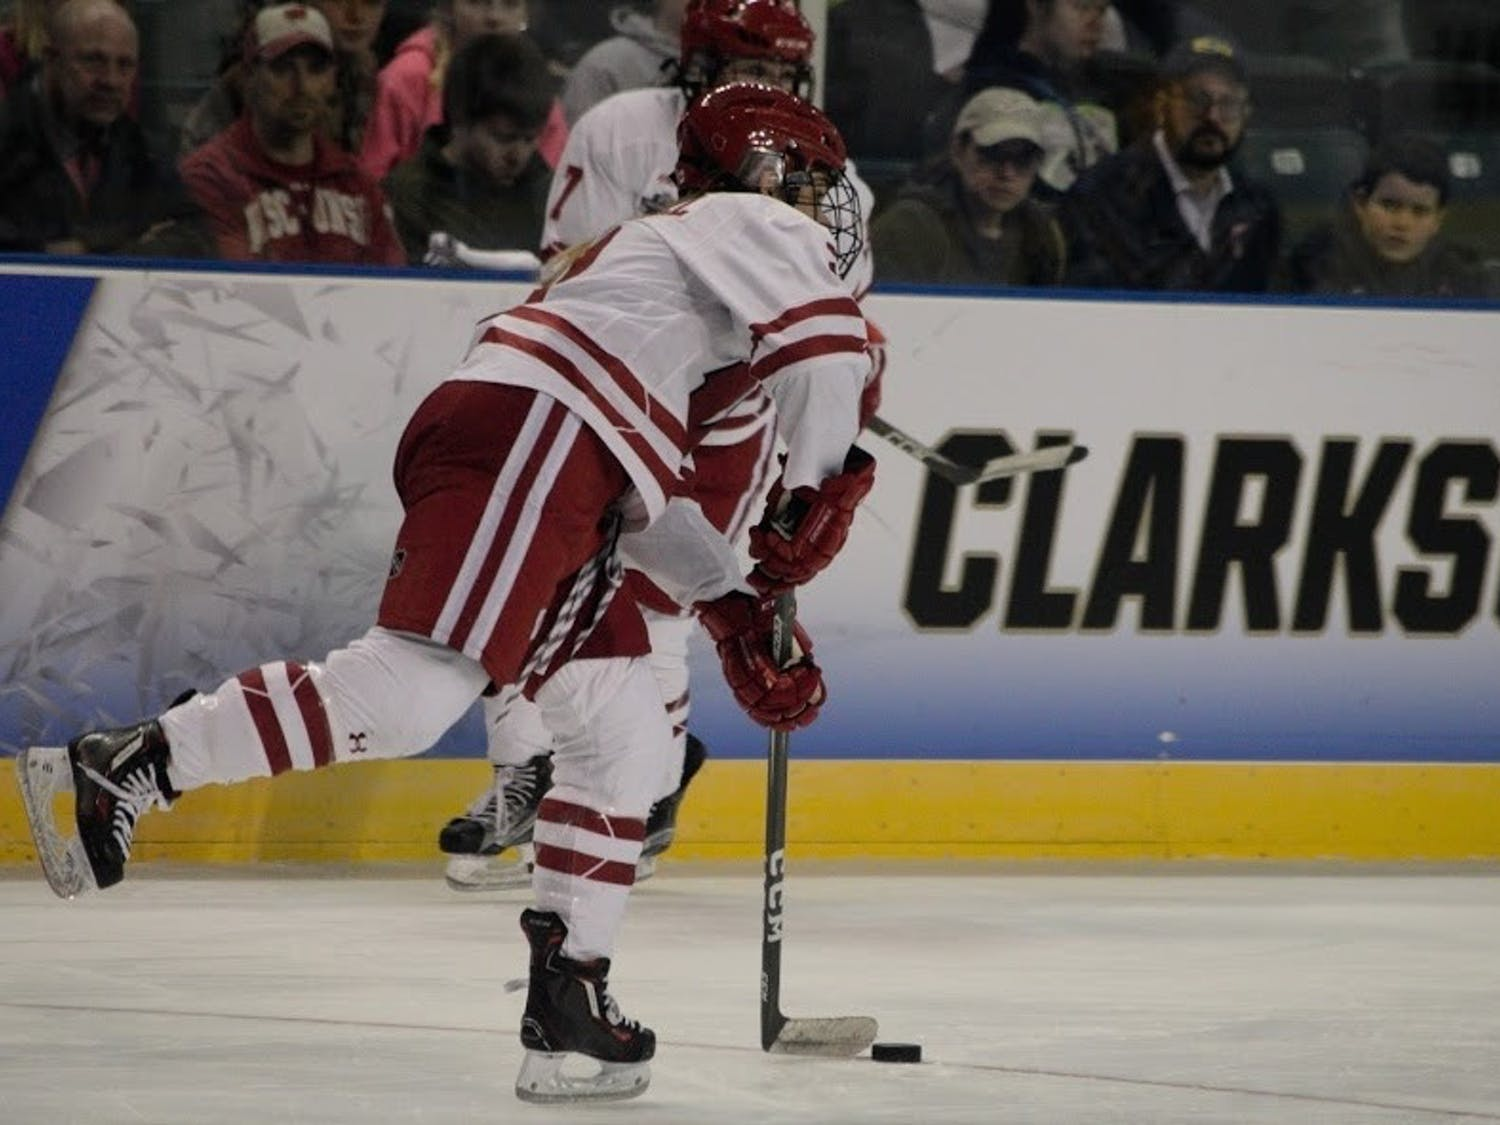 Wisconsin moved to 10-0-0 for only second time in program history after a win against Bemidji State.